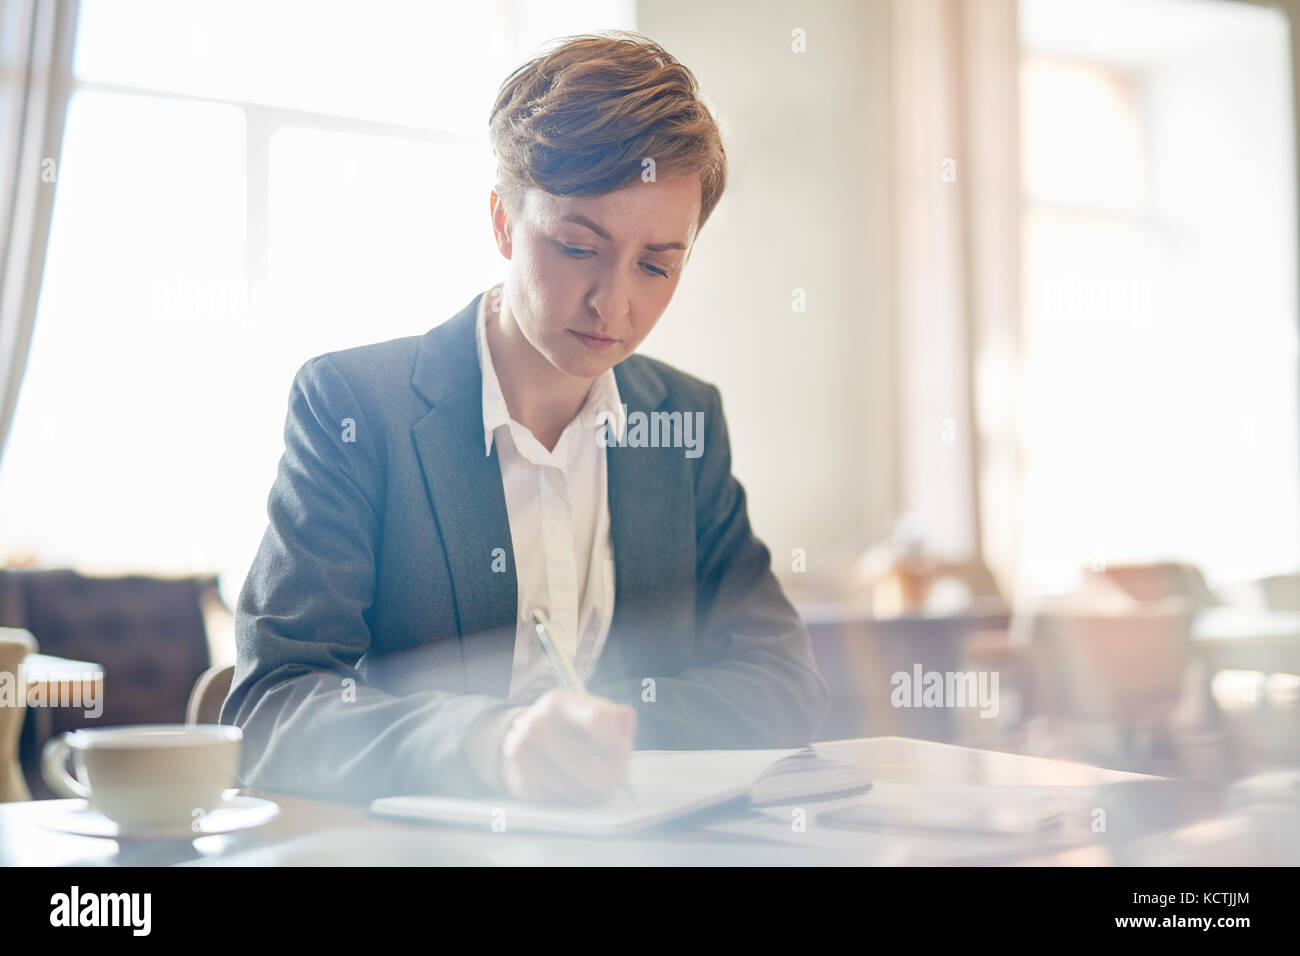 Writing agenda - Stock Image